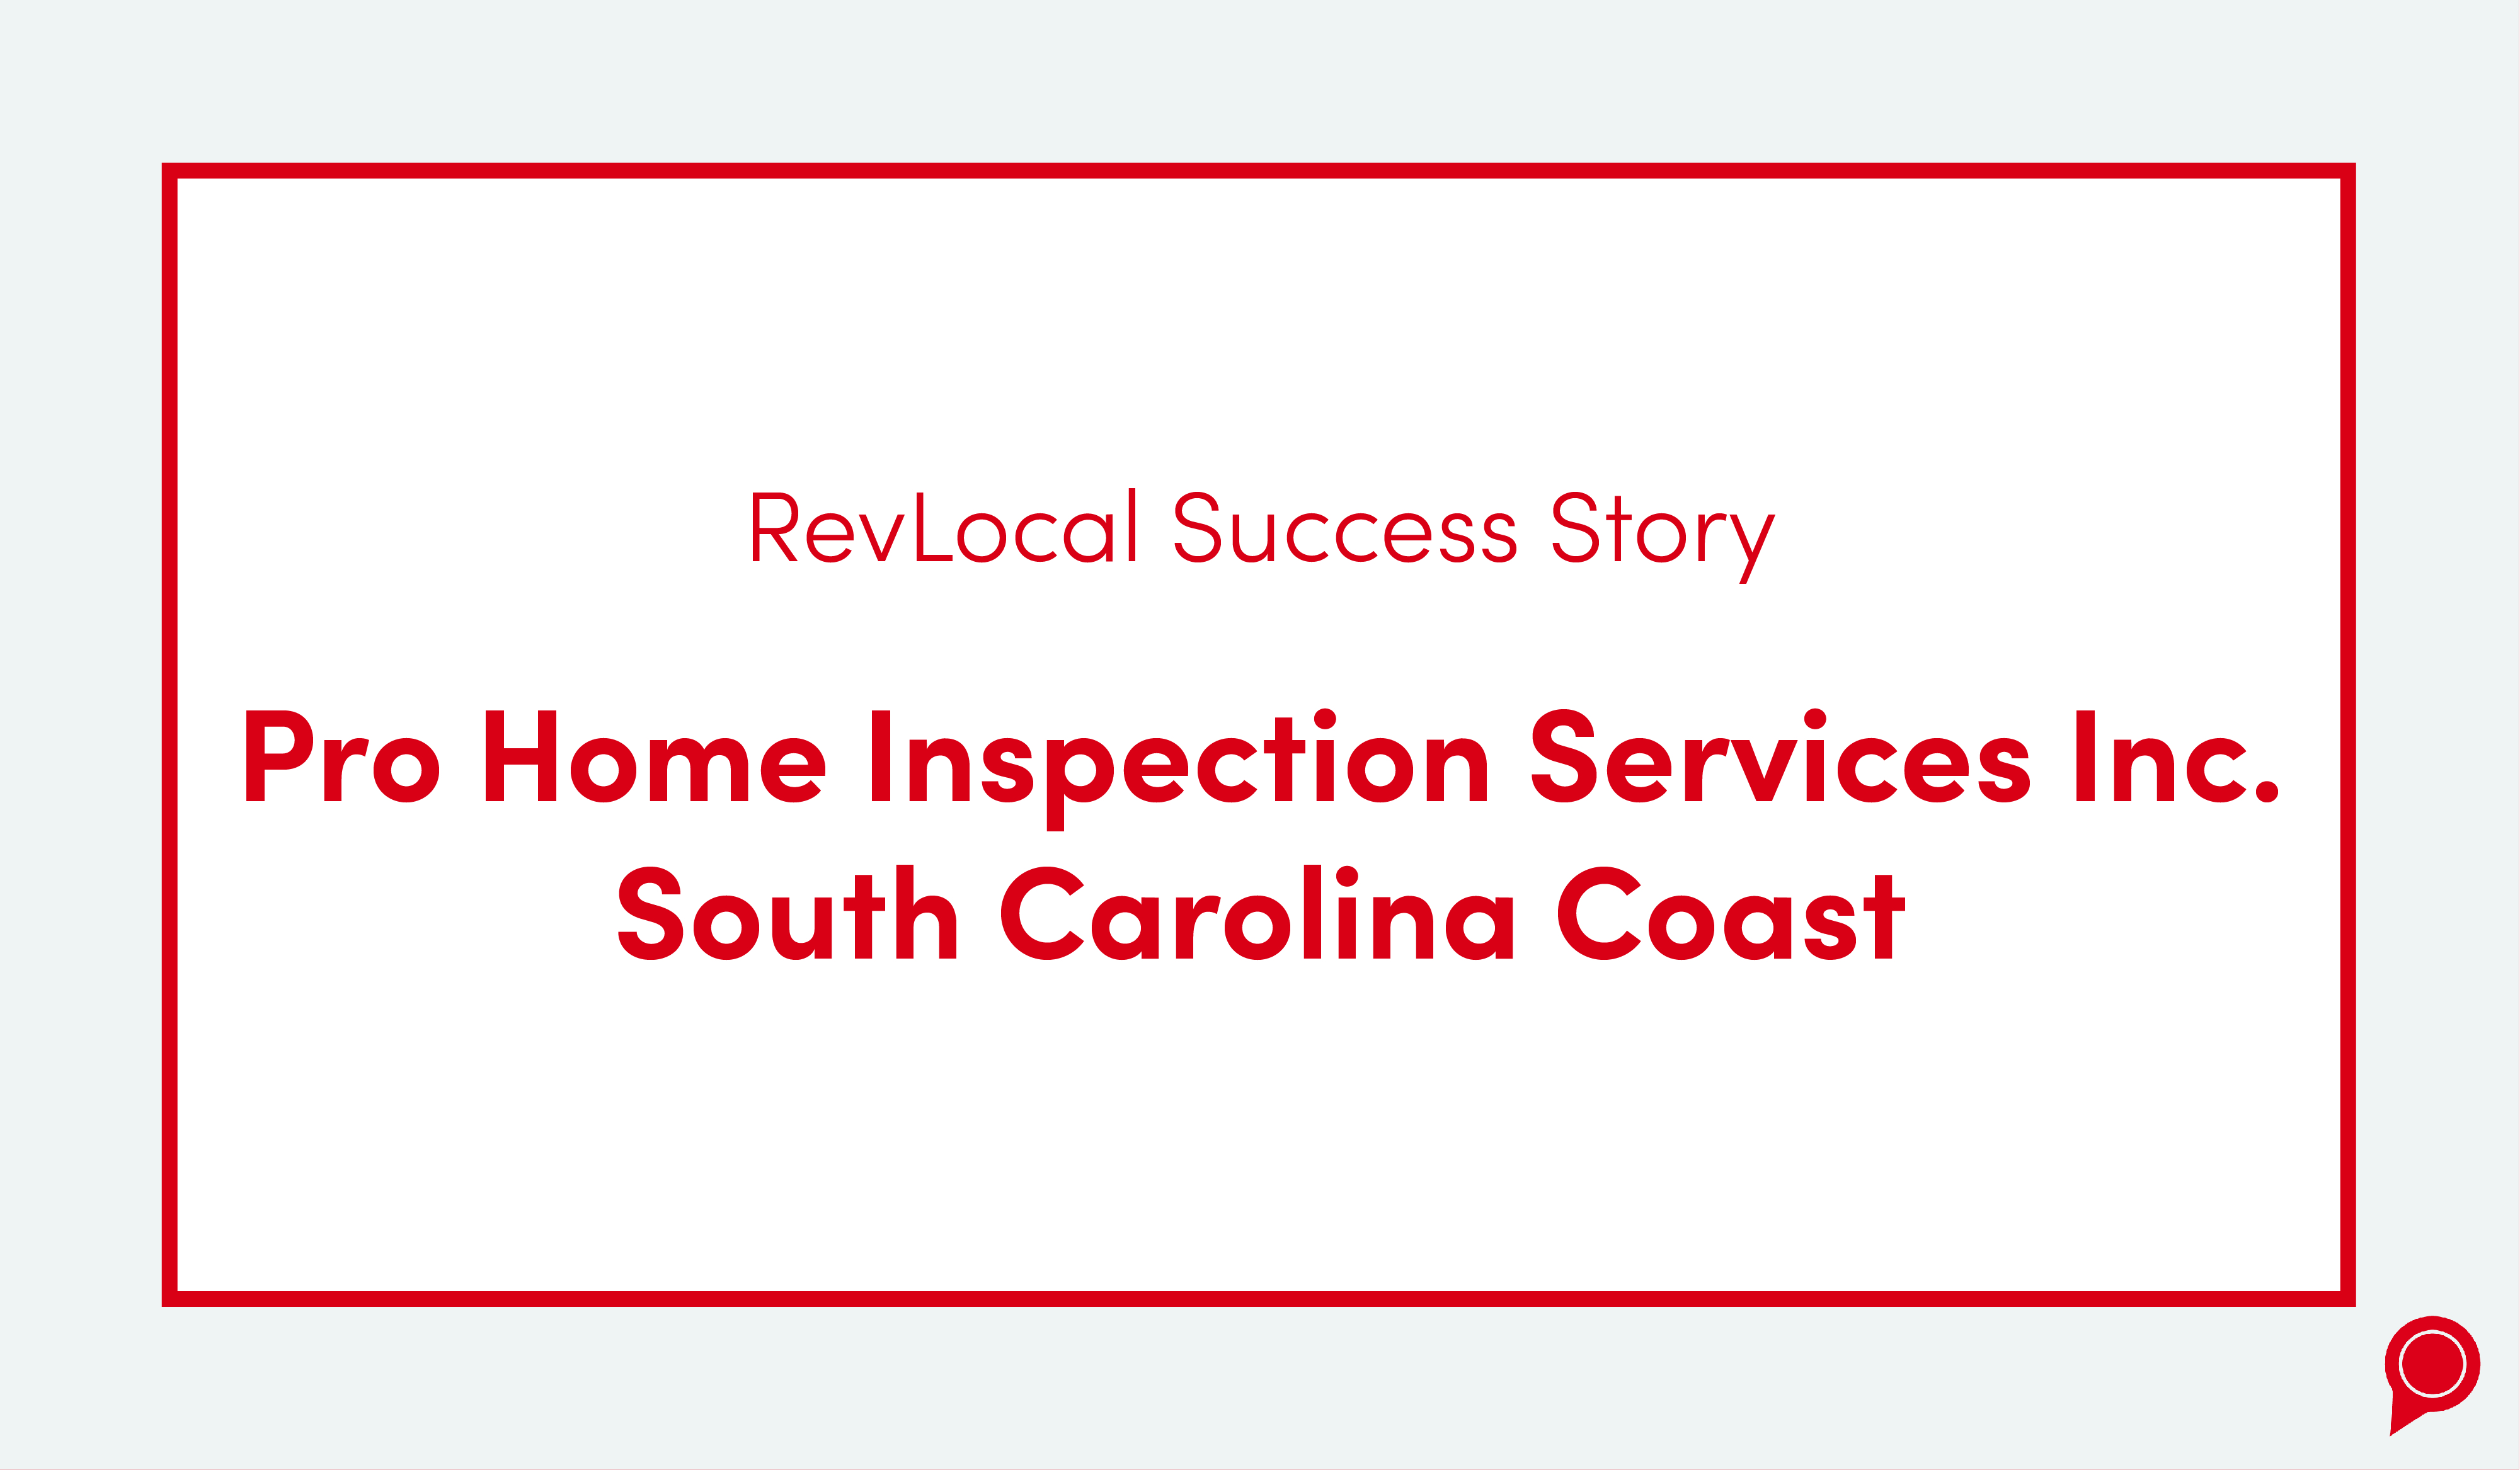 Pro Home Inspection Services, Inc. Success Story